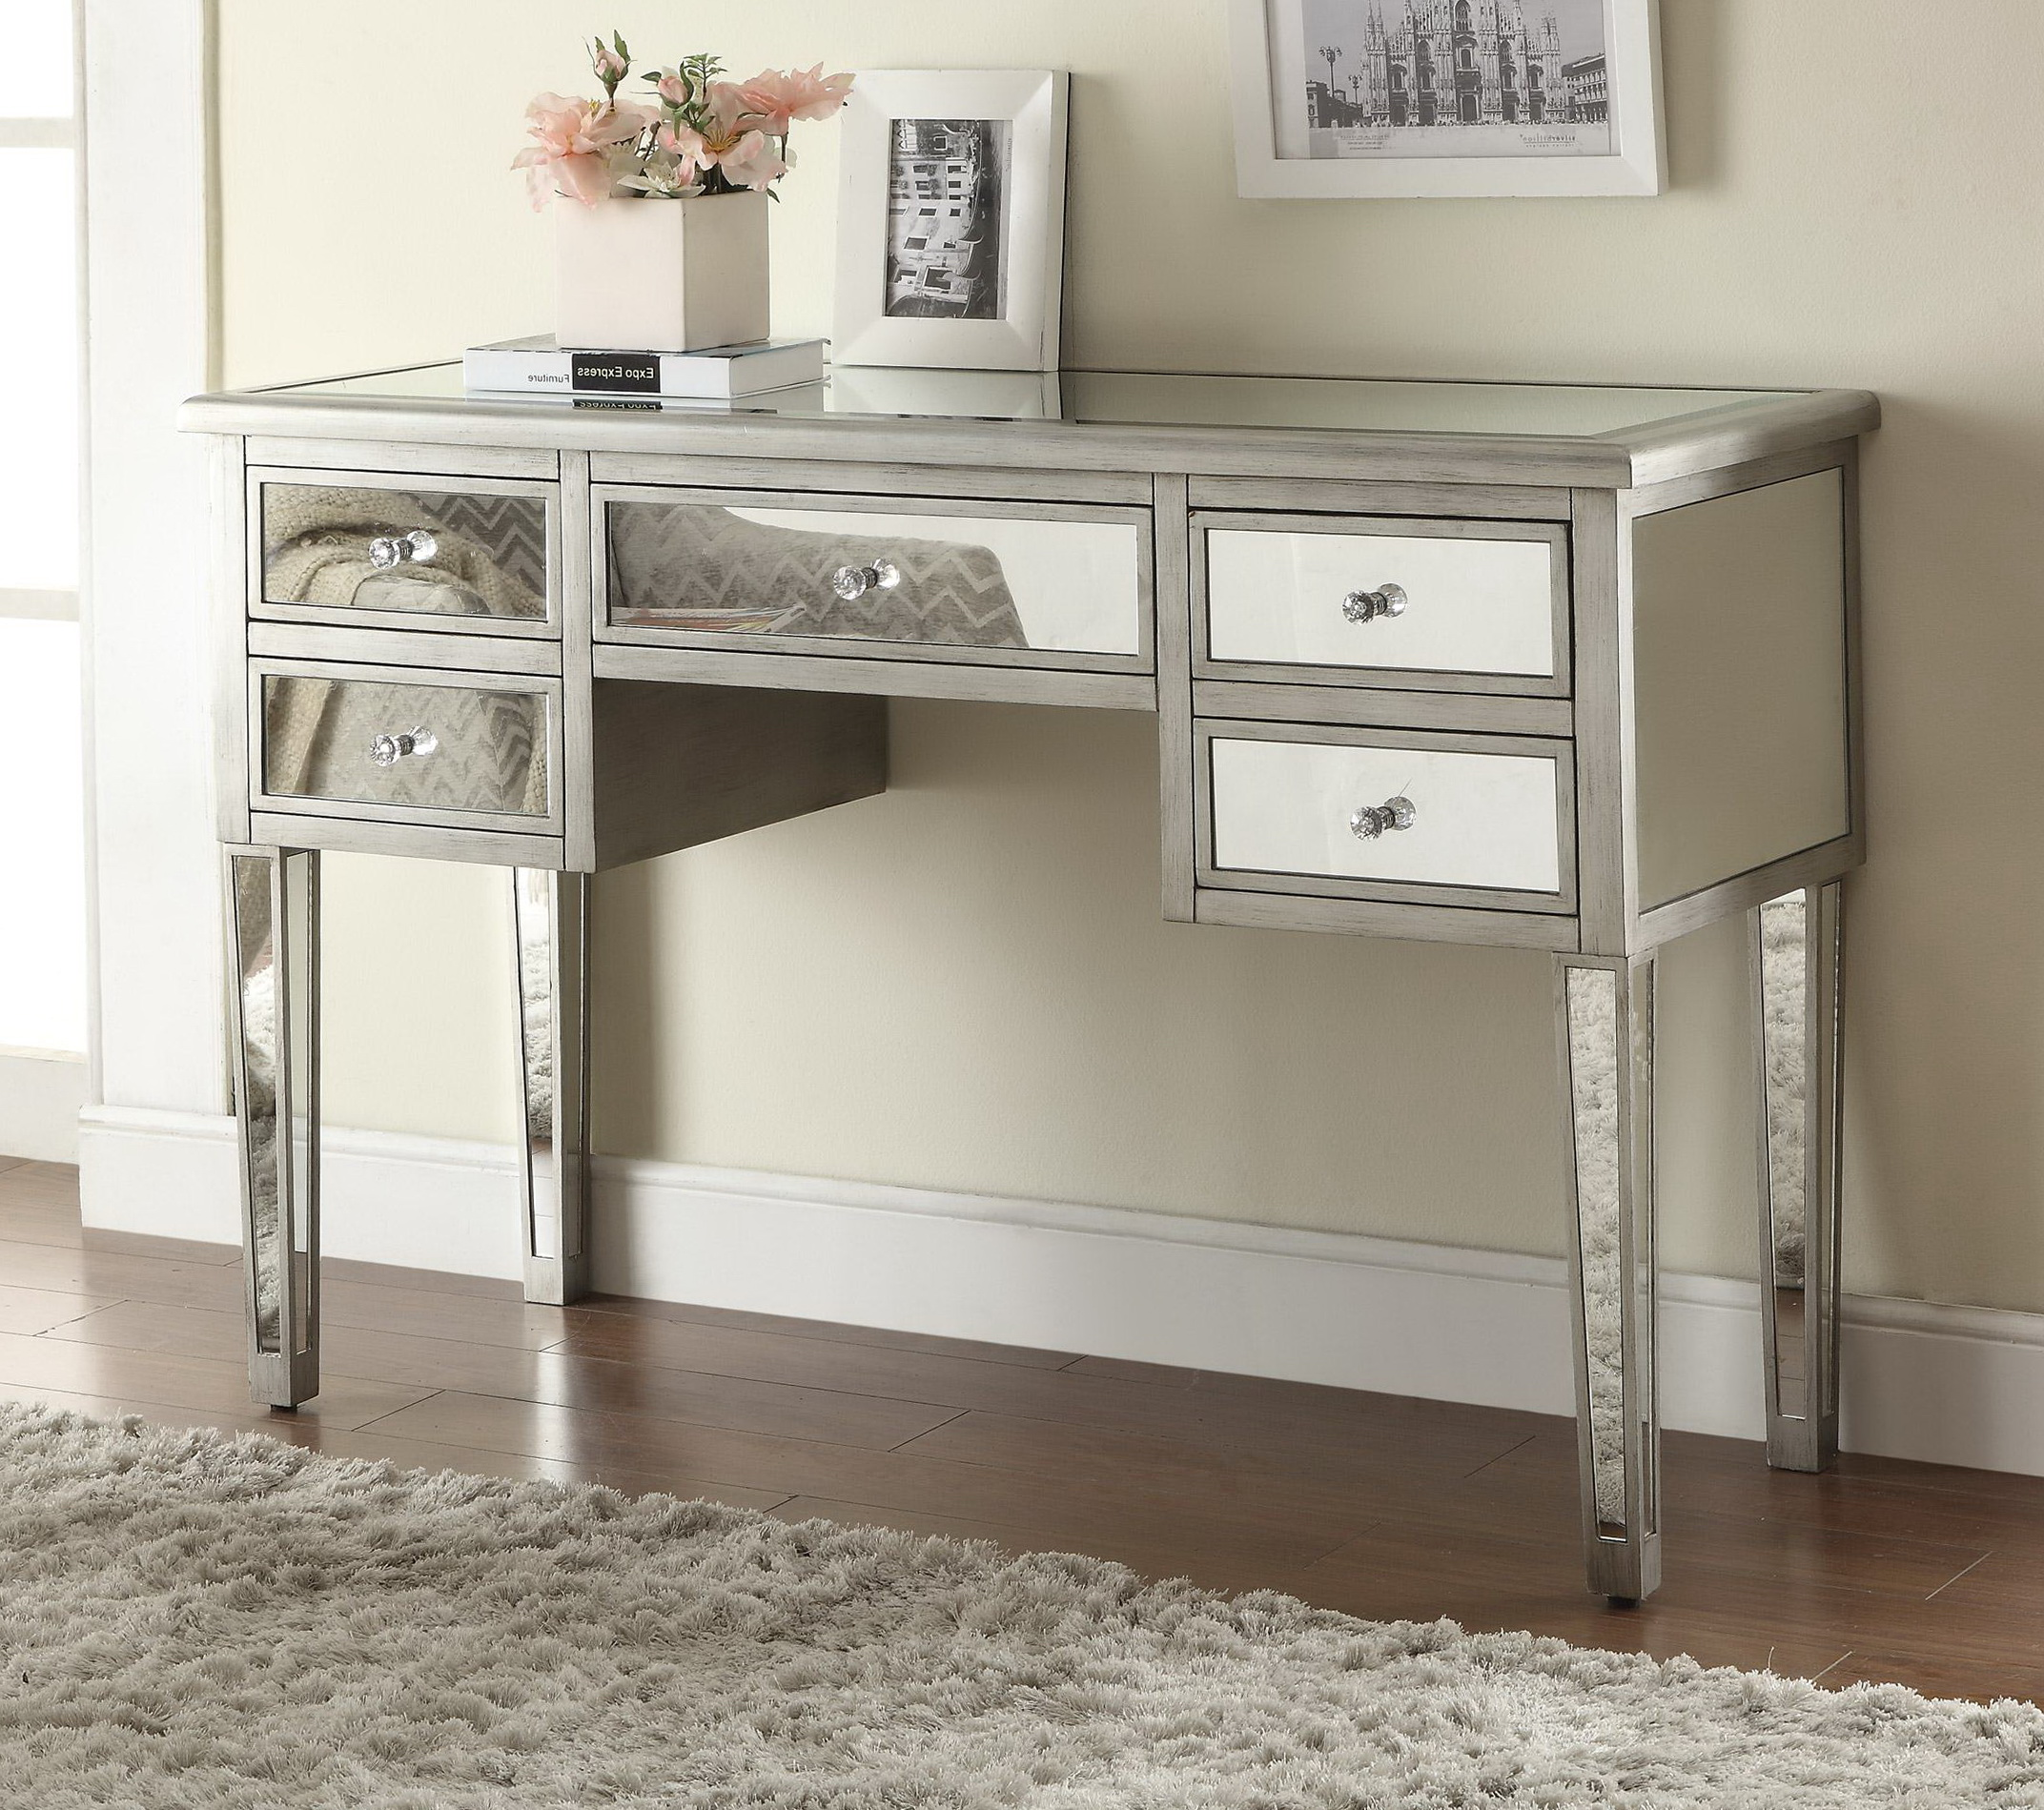 mirror accent table assimilate your house with mirrored contemporary mirage diamond bathroom runner white bedroom nightstand inch legs bunnings garden furniture christmas